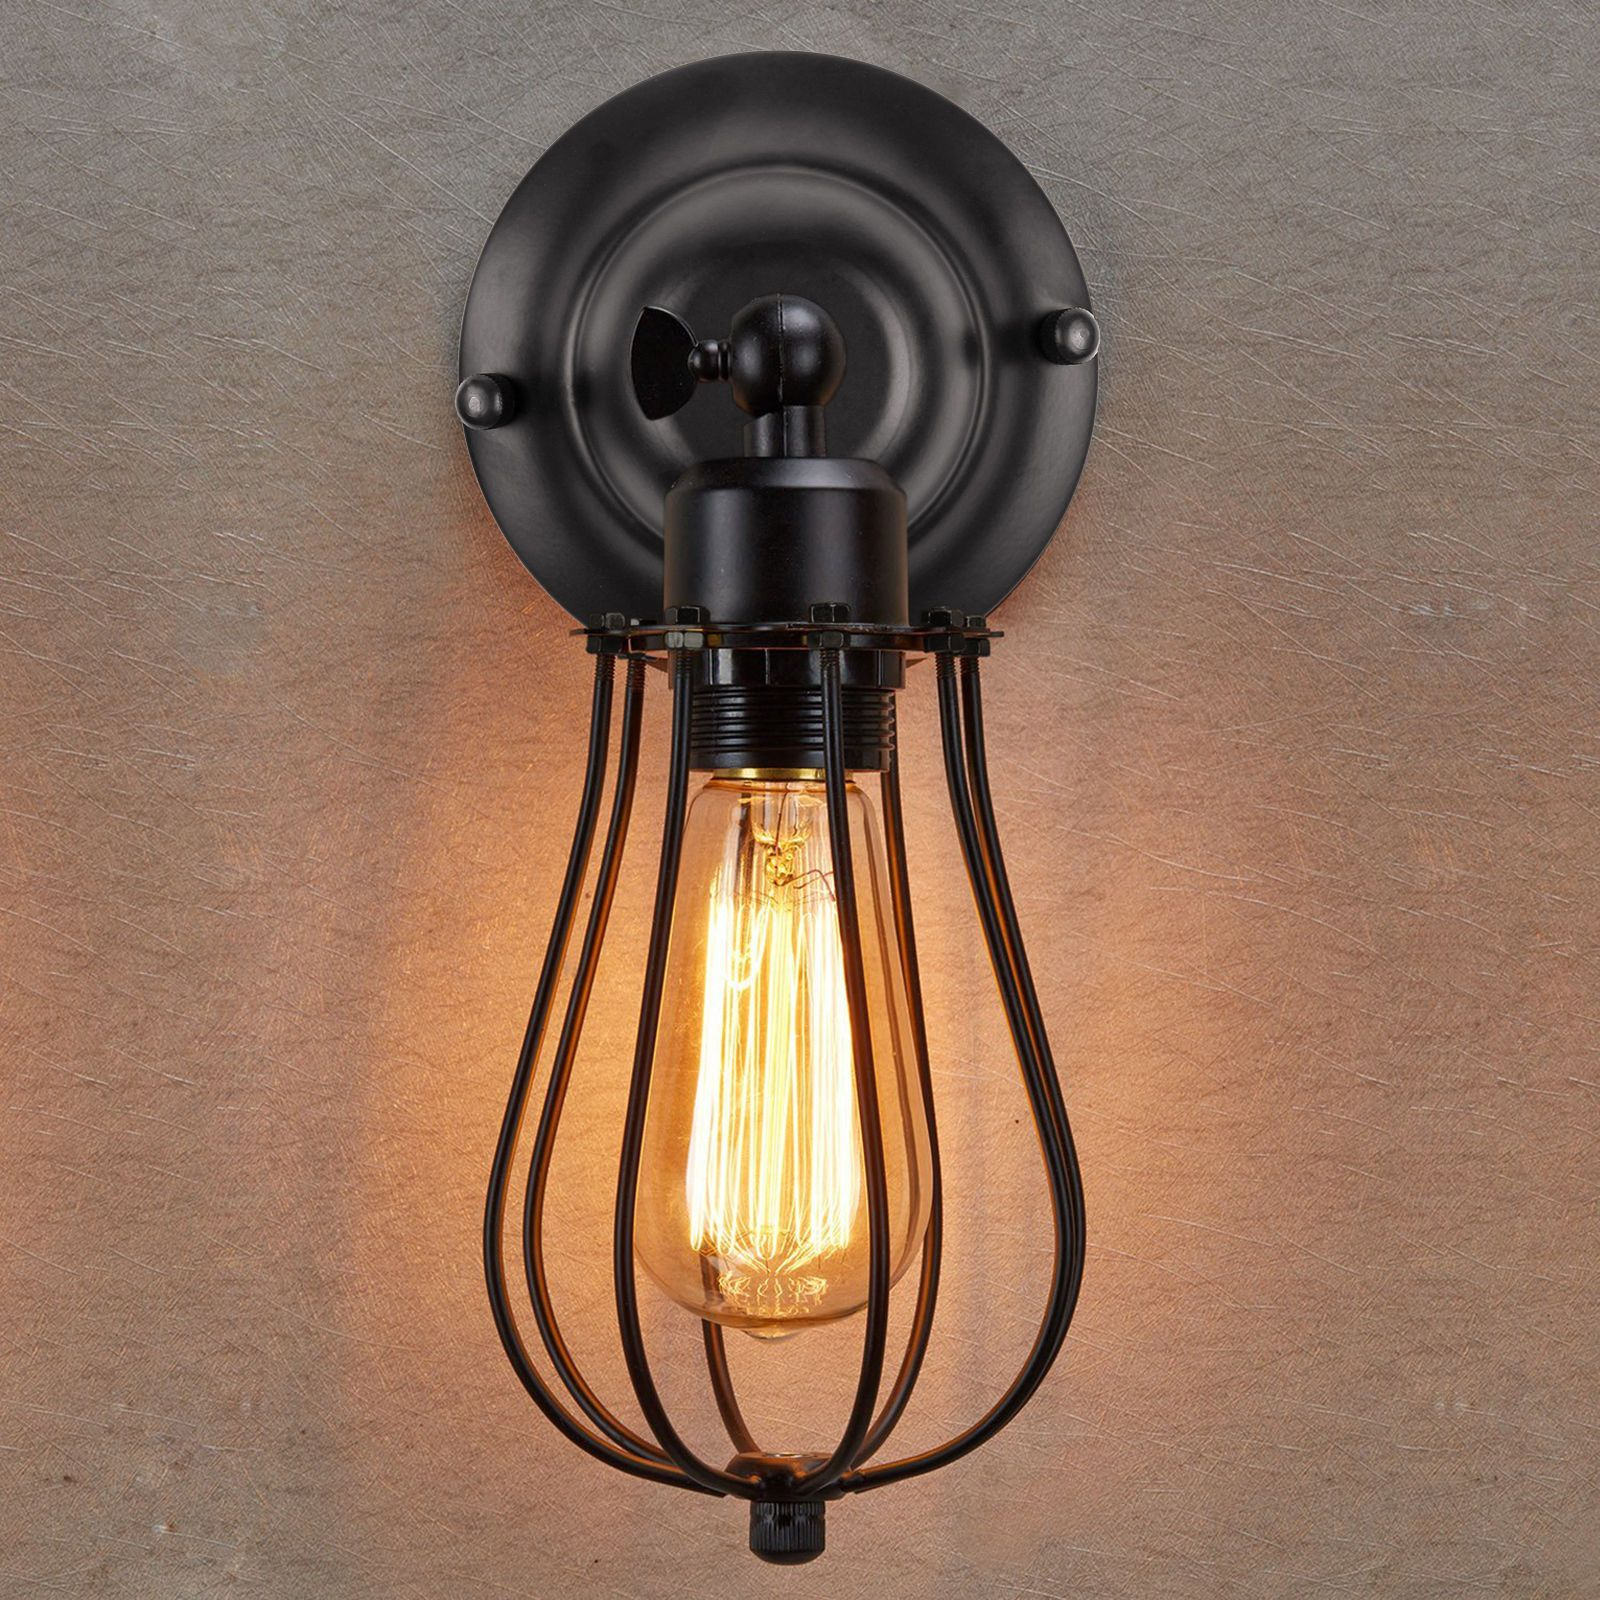 355 aud industrial loft style wall lamp cage wall sconce vintage 355 aud industrial loft style wall lamp cage wall sconce vintage light antique fixture ebay home garden arubaitofo Choice Image